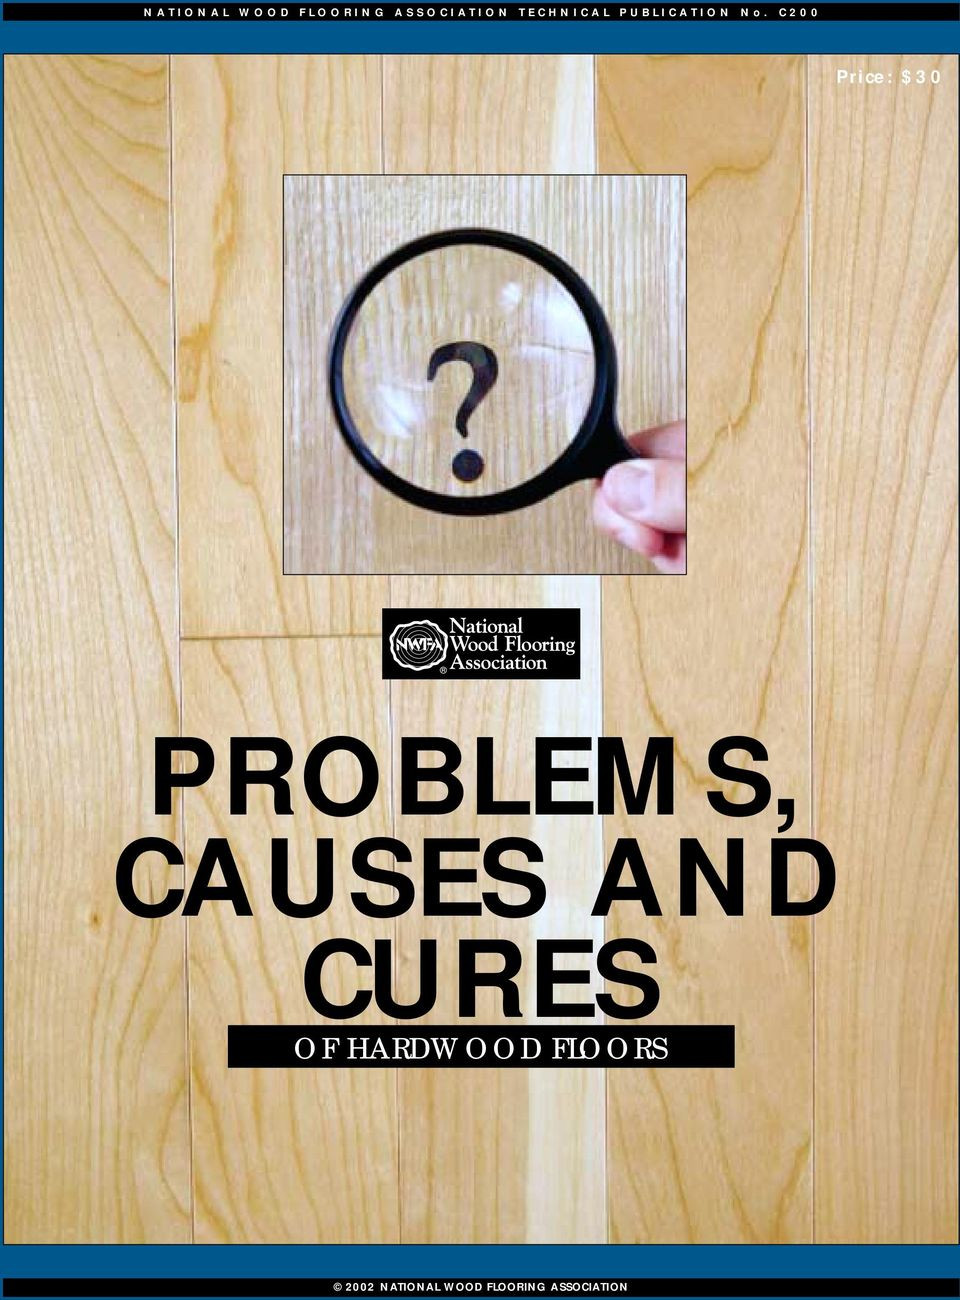 glue down hardwood floor problems of problems causes and cures pdf intended for c200 price 30 problems causes and